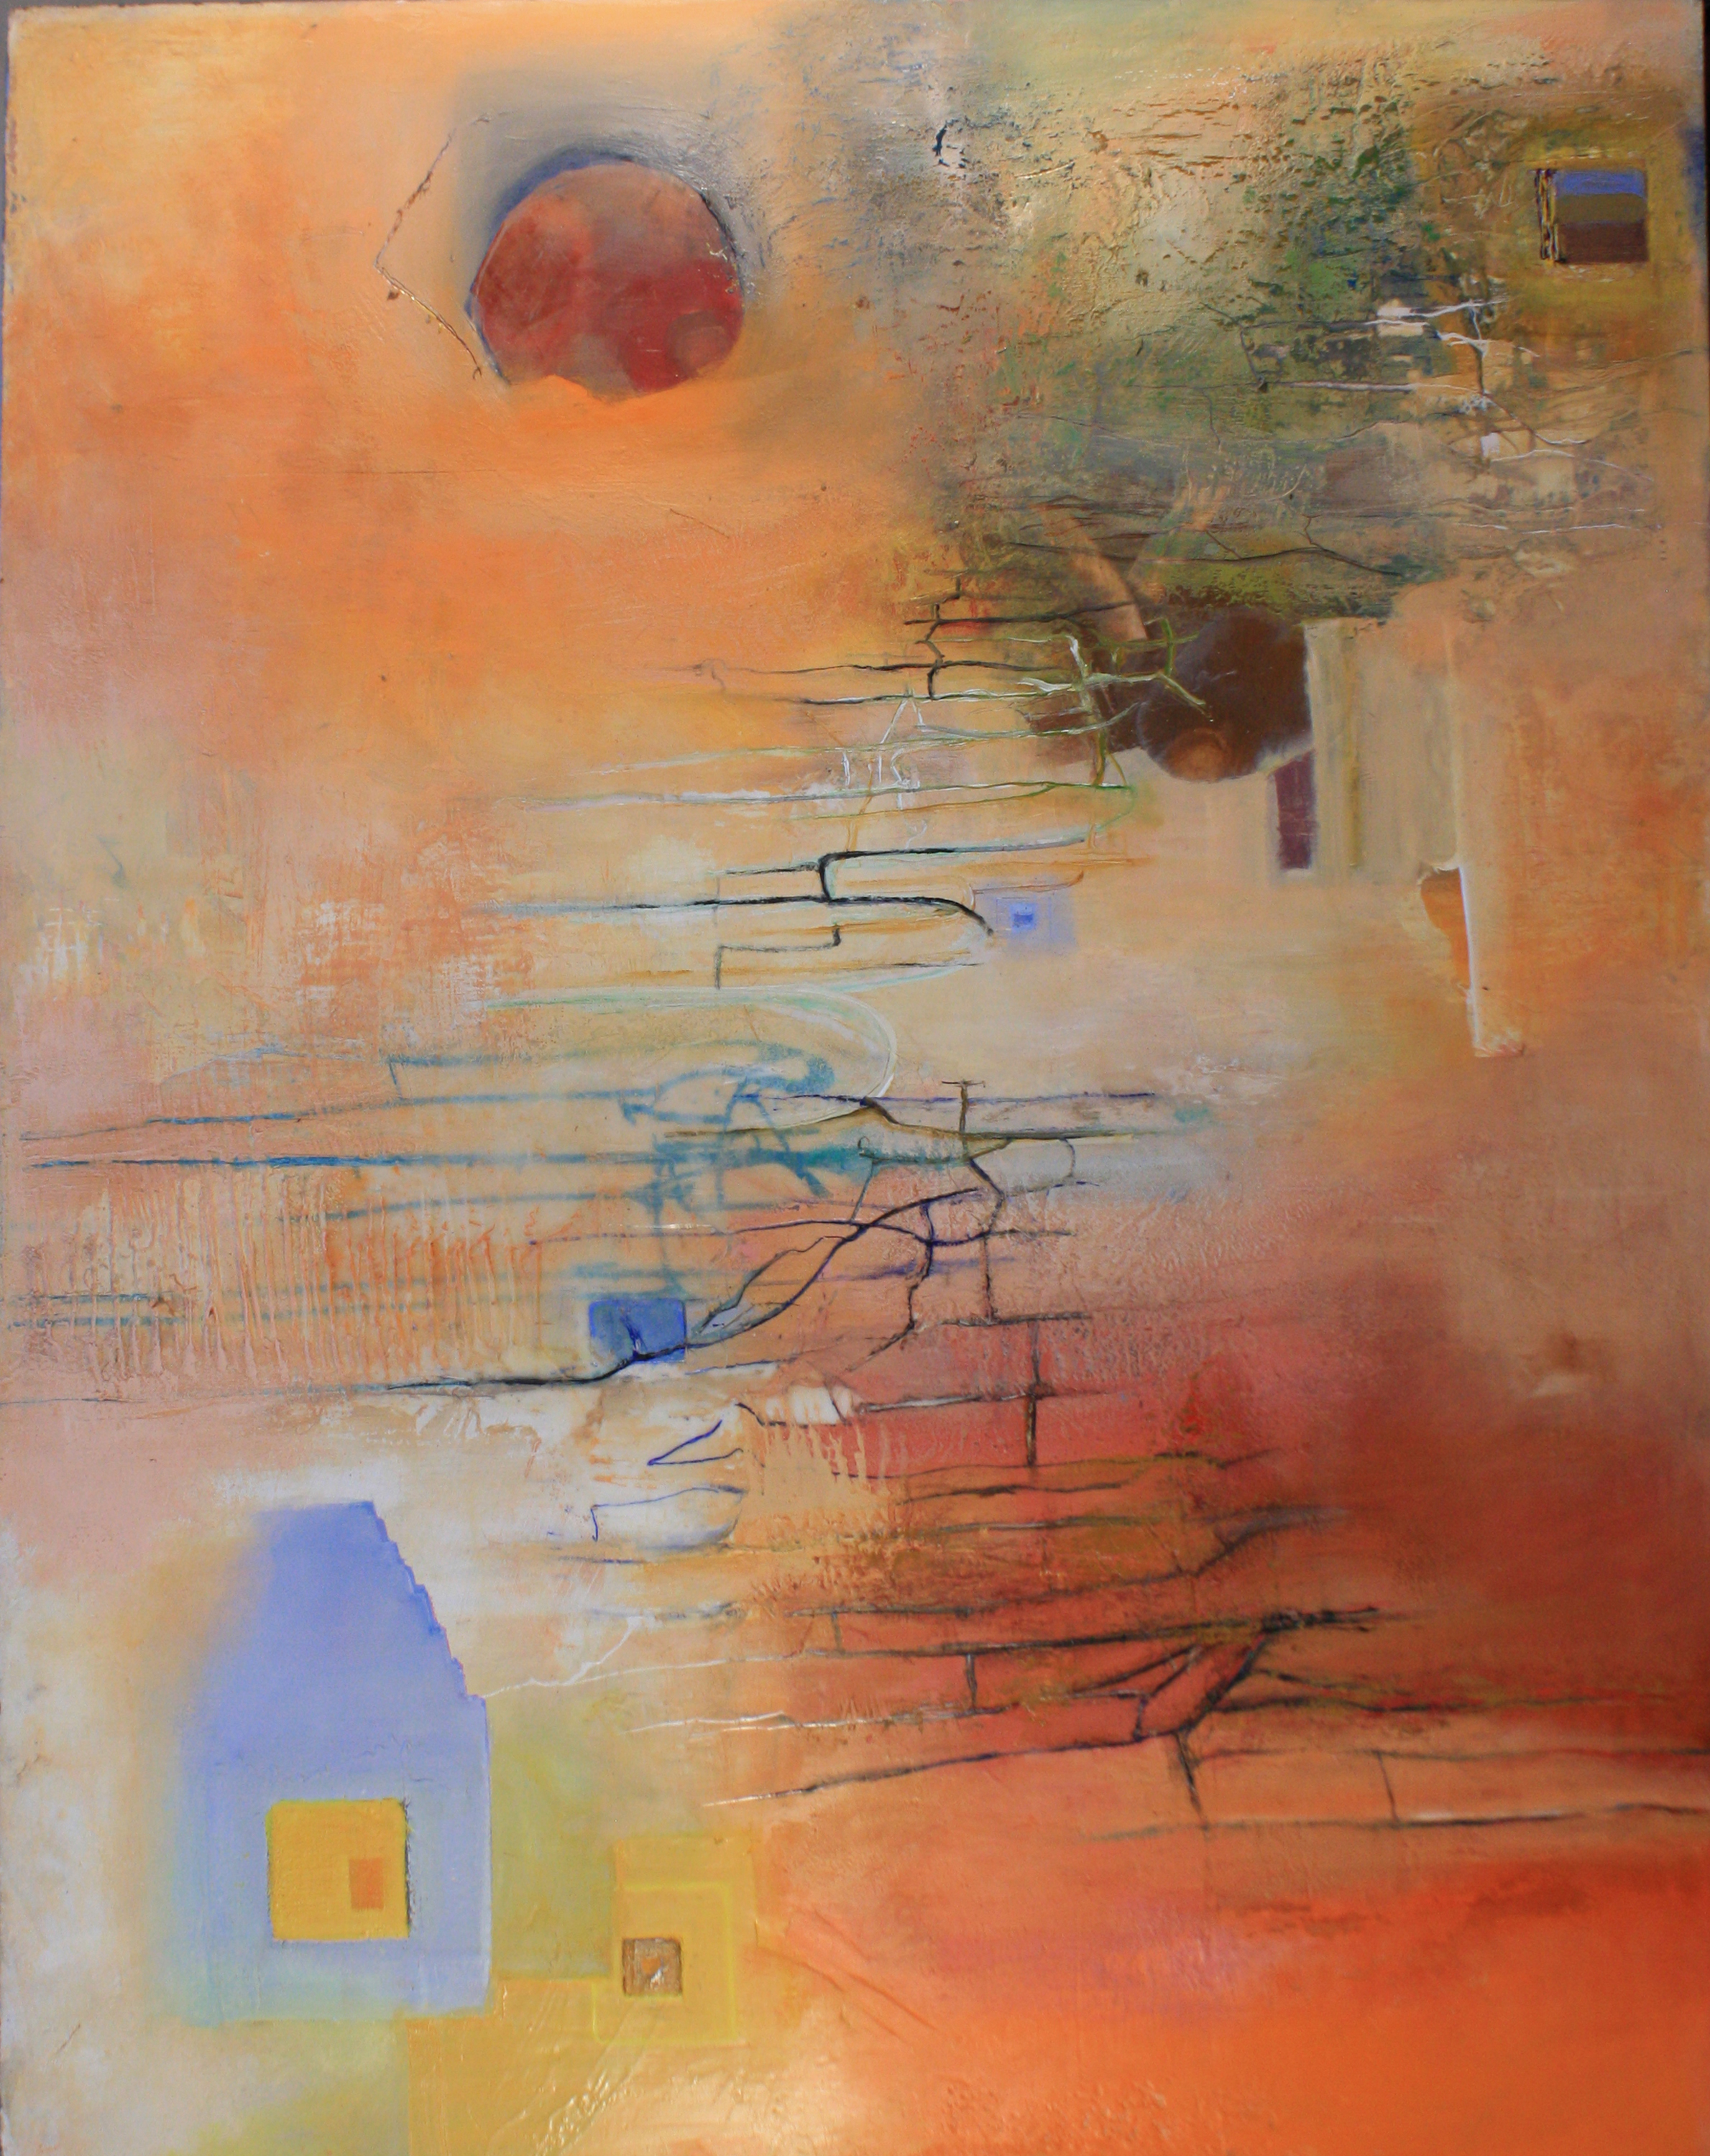 Alan Soffer Artwork The Open Door, 2010 Encaustic Painting, Abstract